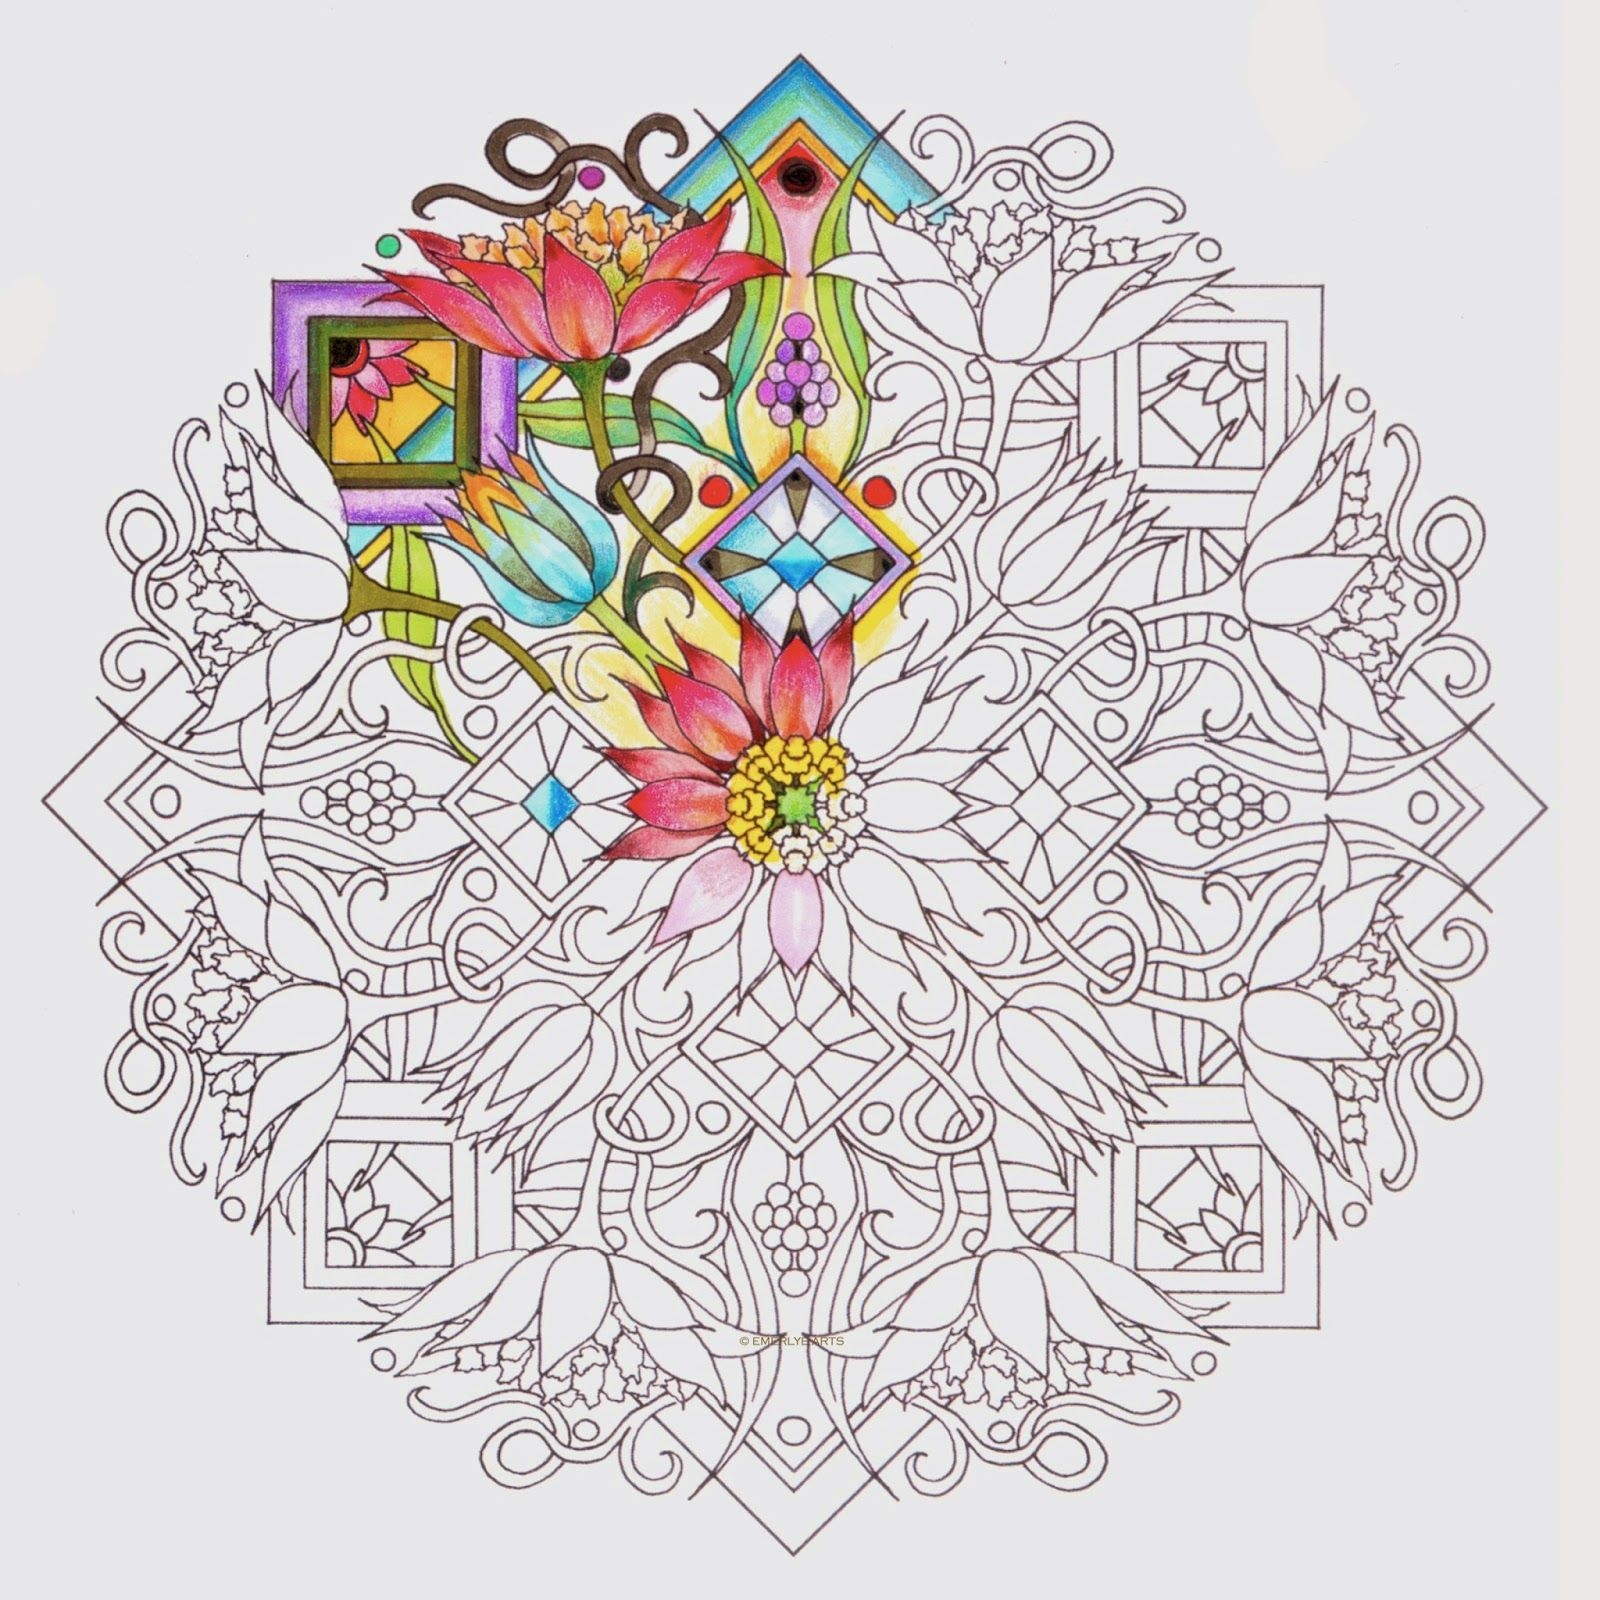 Partially Colored Mandala Design From One Of Cynthia Emerlye S Upcoming Books Mandala Coloring Mandala Design Mandala Book